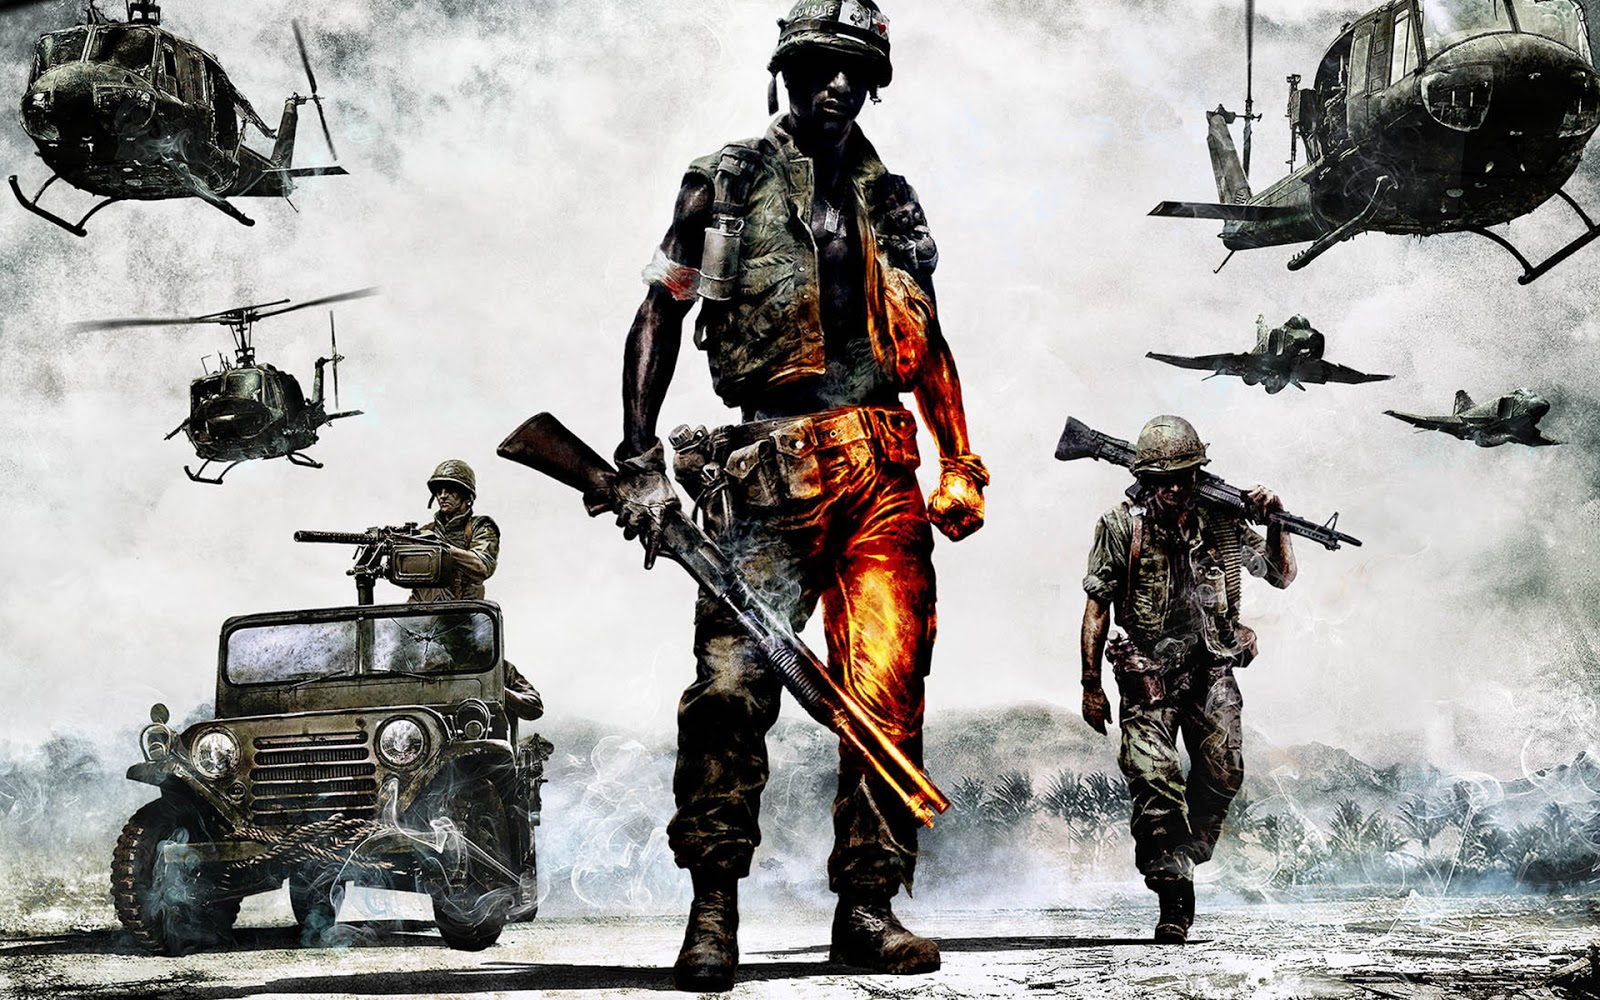 48+] US Army Soldier Wallpaper on WallpaperSafari